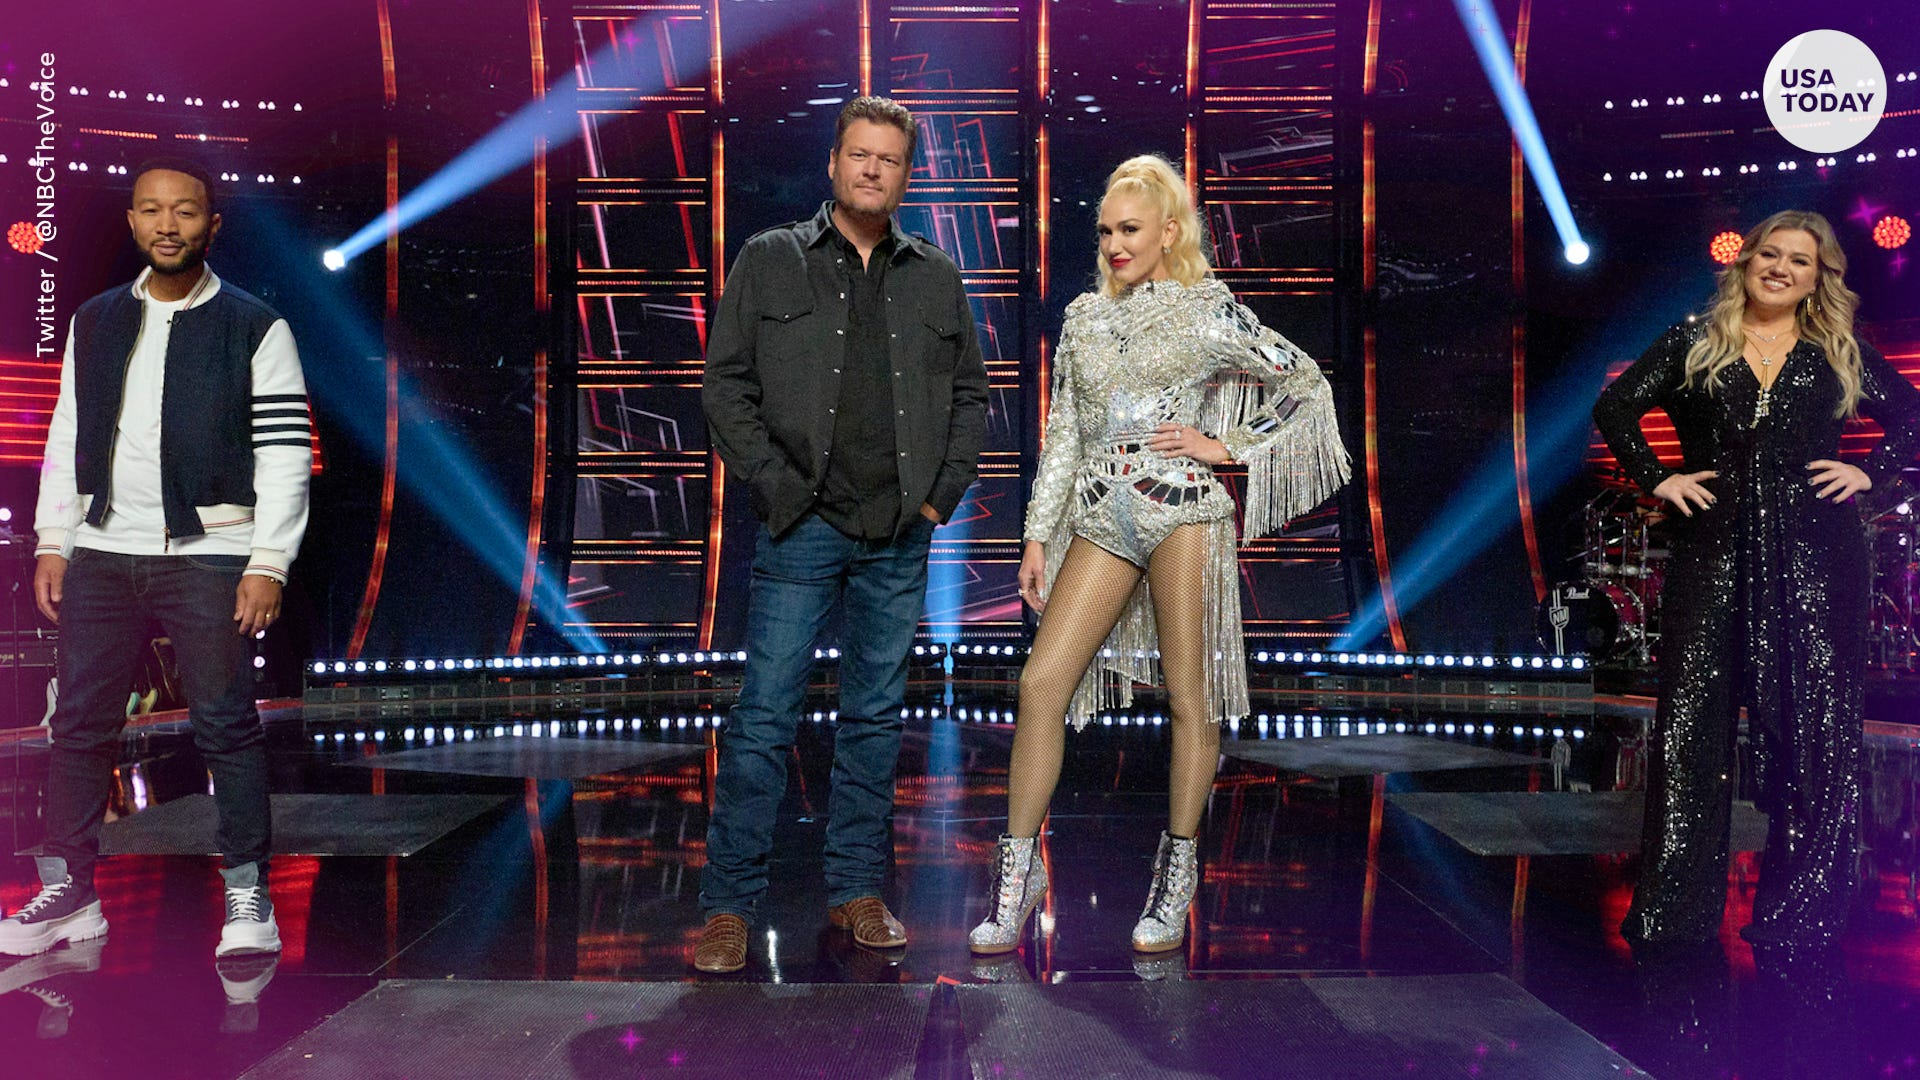 Virtual fans, block buttons, Blake Shelton's thoughts on red sauce... 'The Voice' returns